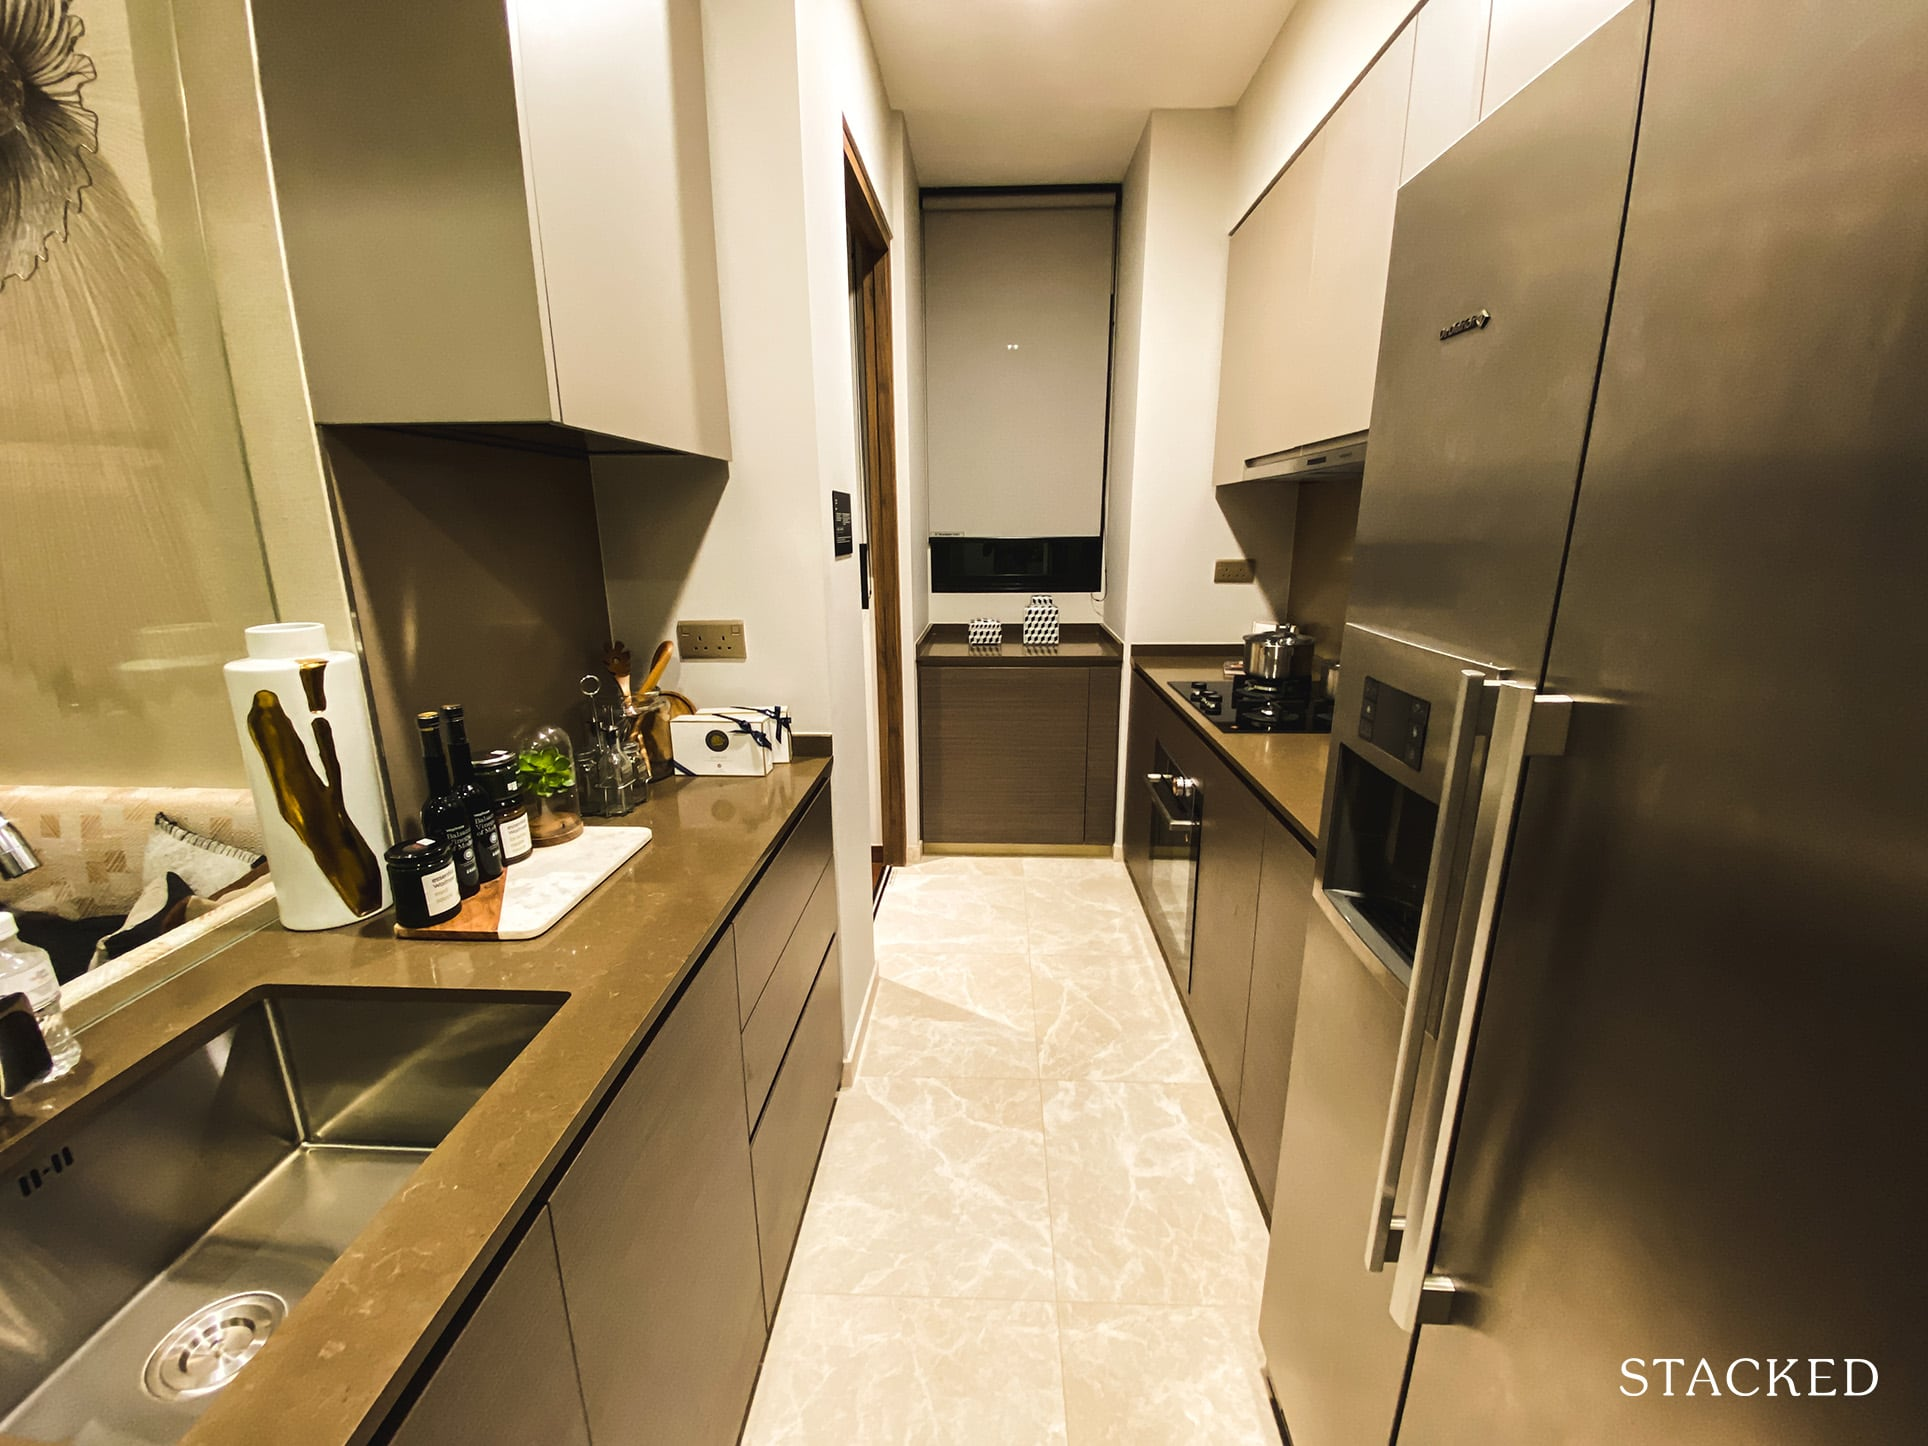 daintree residence 3 bedroom kitchen